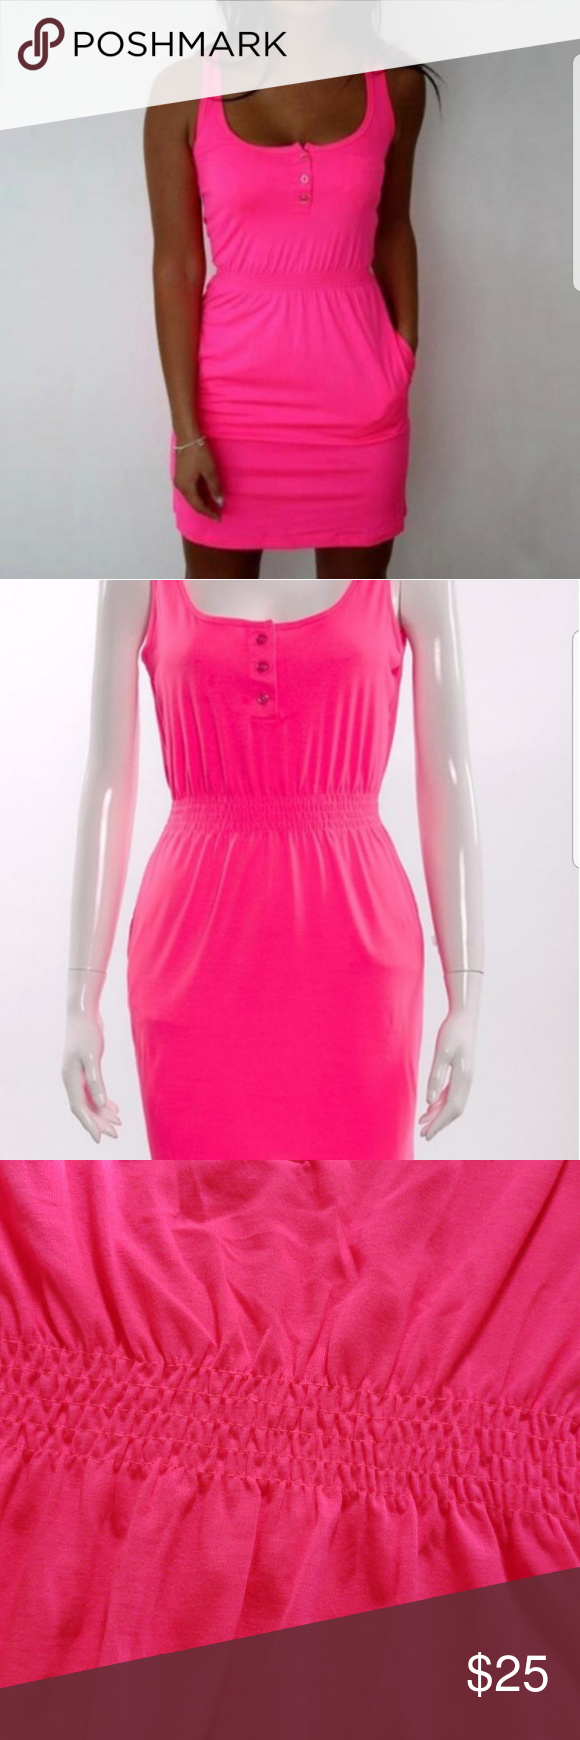 Fluorescent Pink Dress This Bright Is Great For Summer Use As A Cover